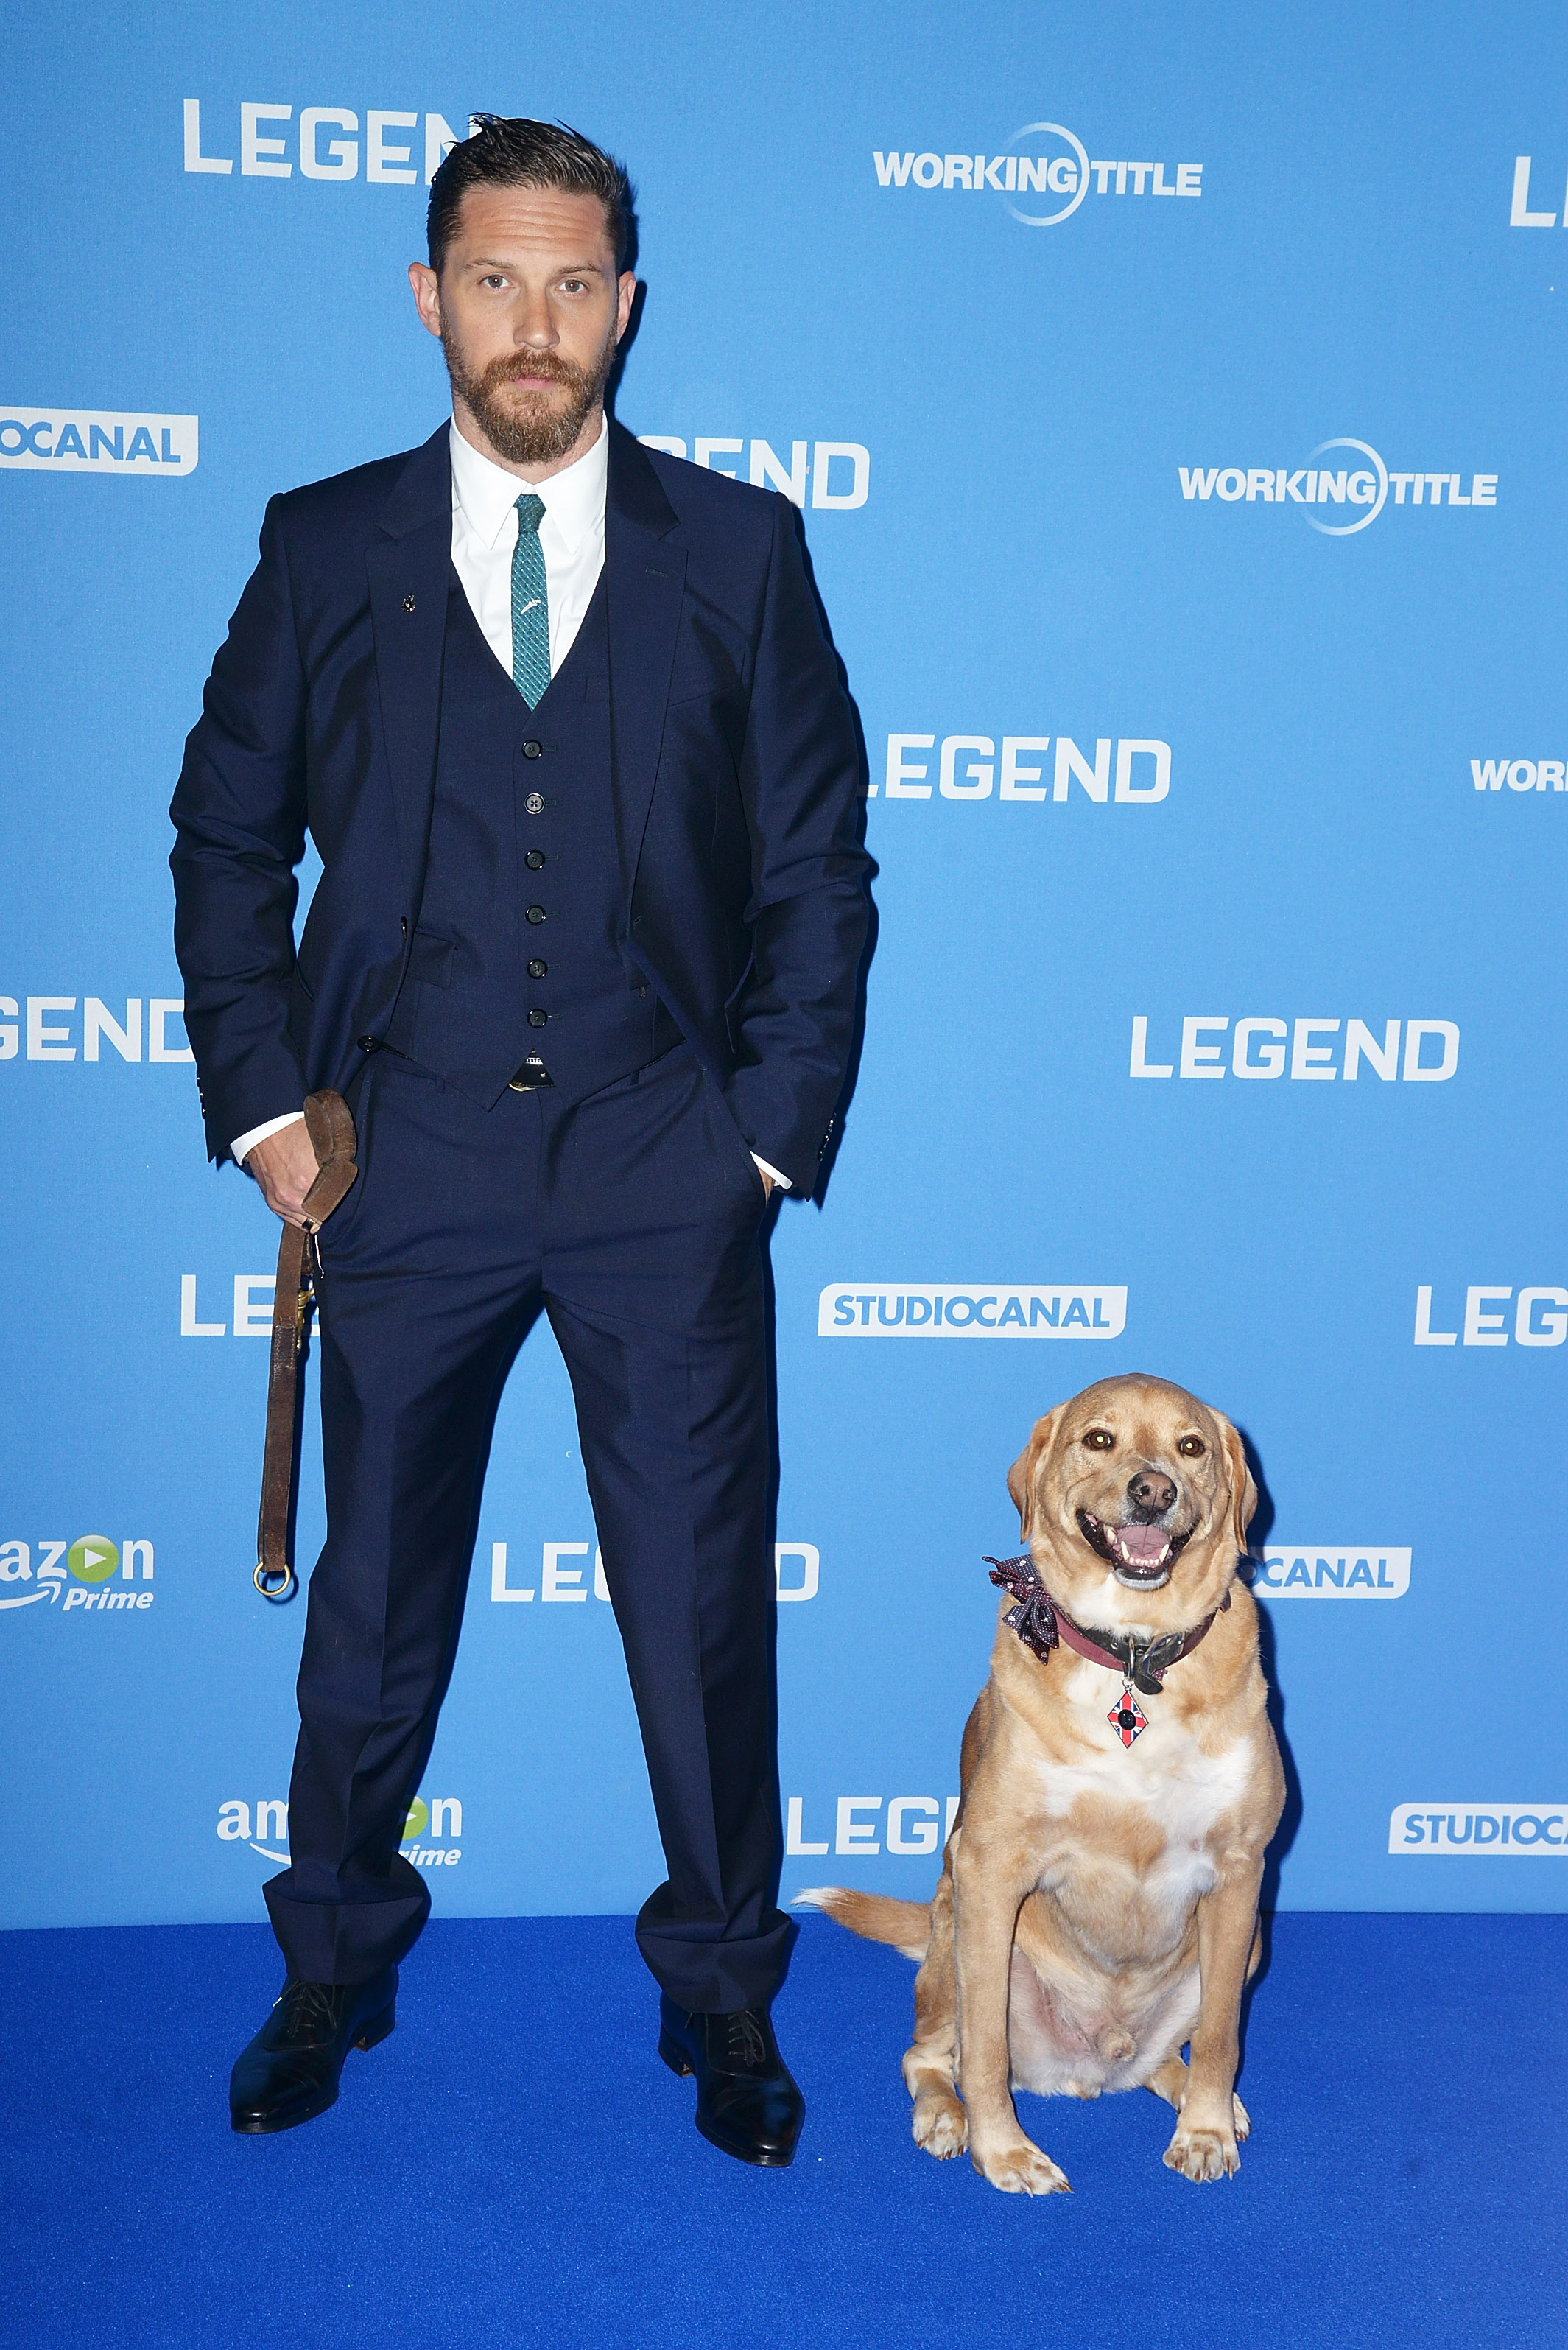 Tom Hardy and dog 'Woody' attend the U.K. Premiere of  Legend  at Odeon Leicester Square on September 3, 2015 in London, England.